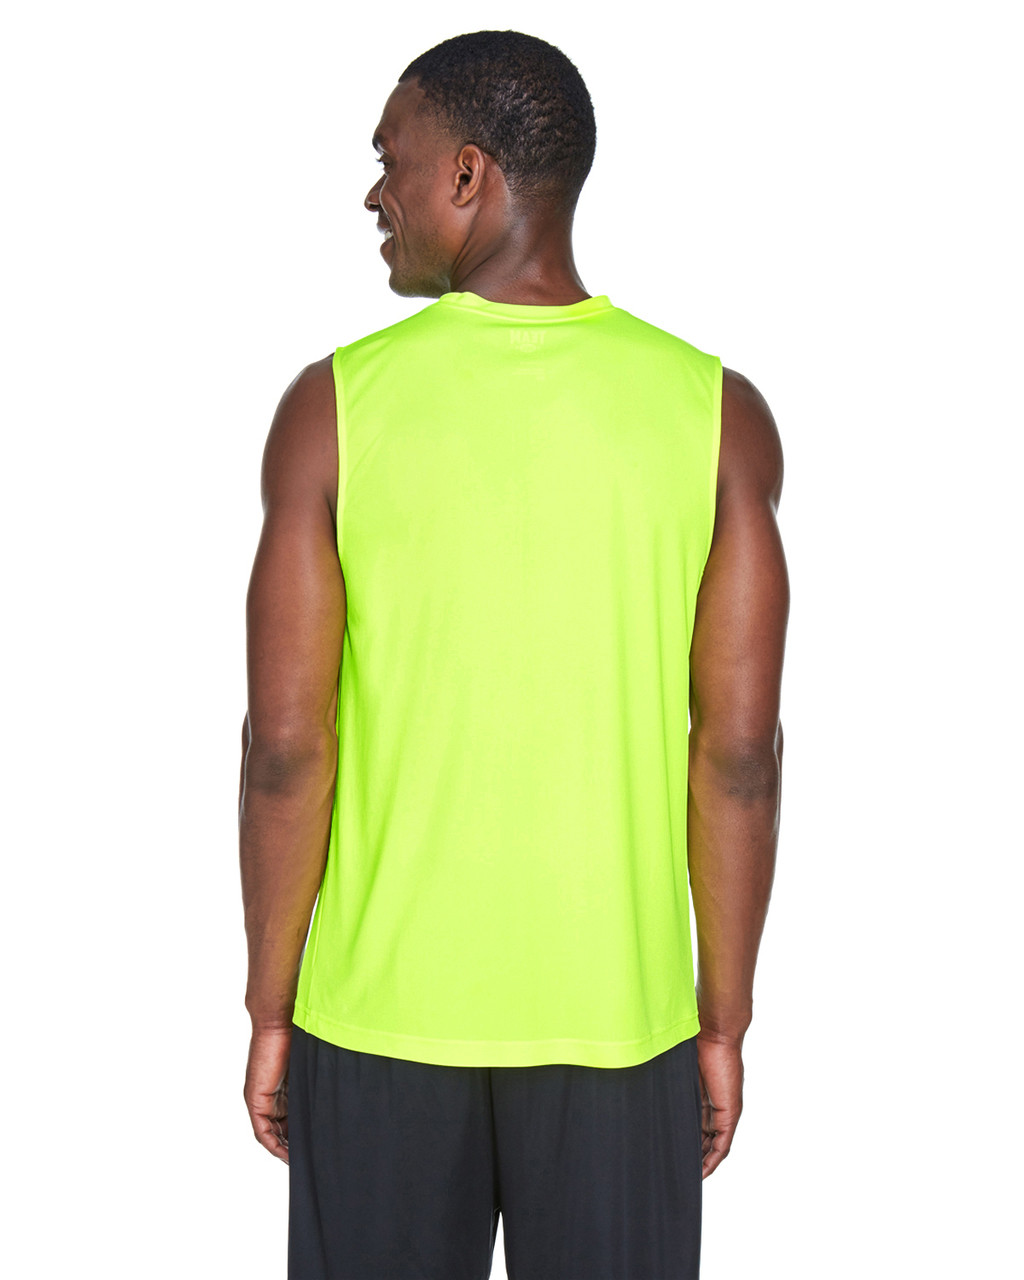 Safety Yellow - Back, TT11M Team 365 Men's Performance Muscle T-Shirt | BlankClothing.ca